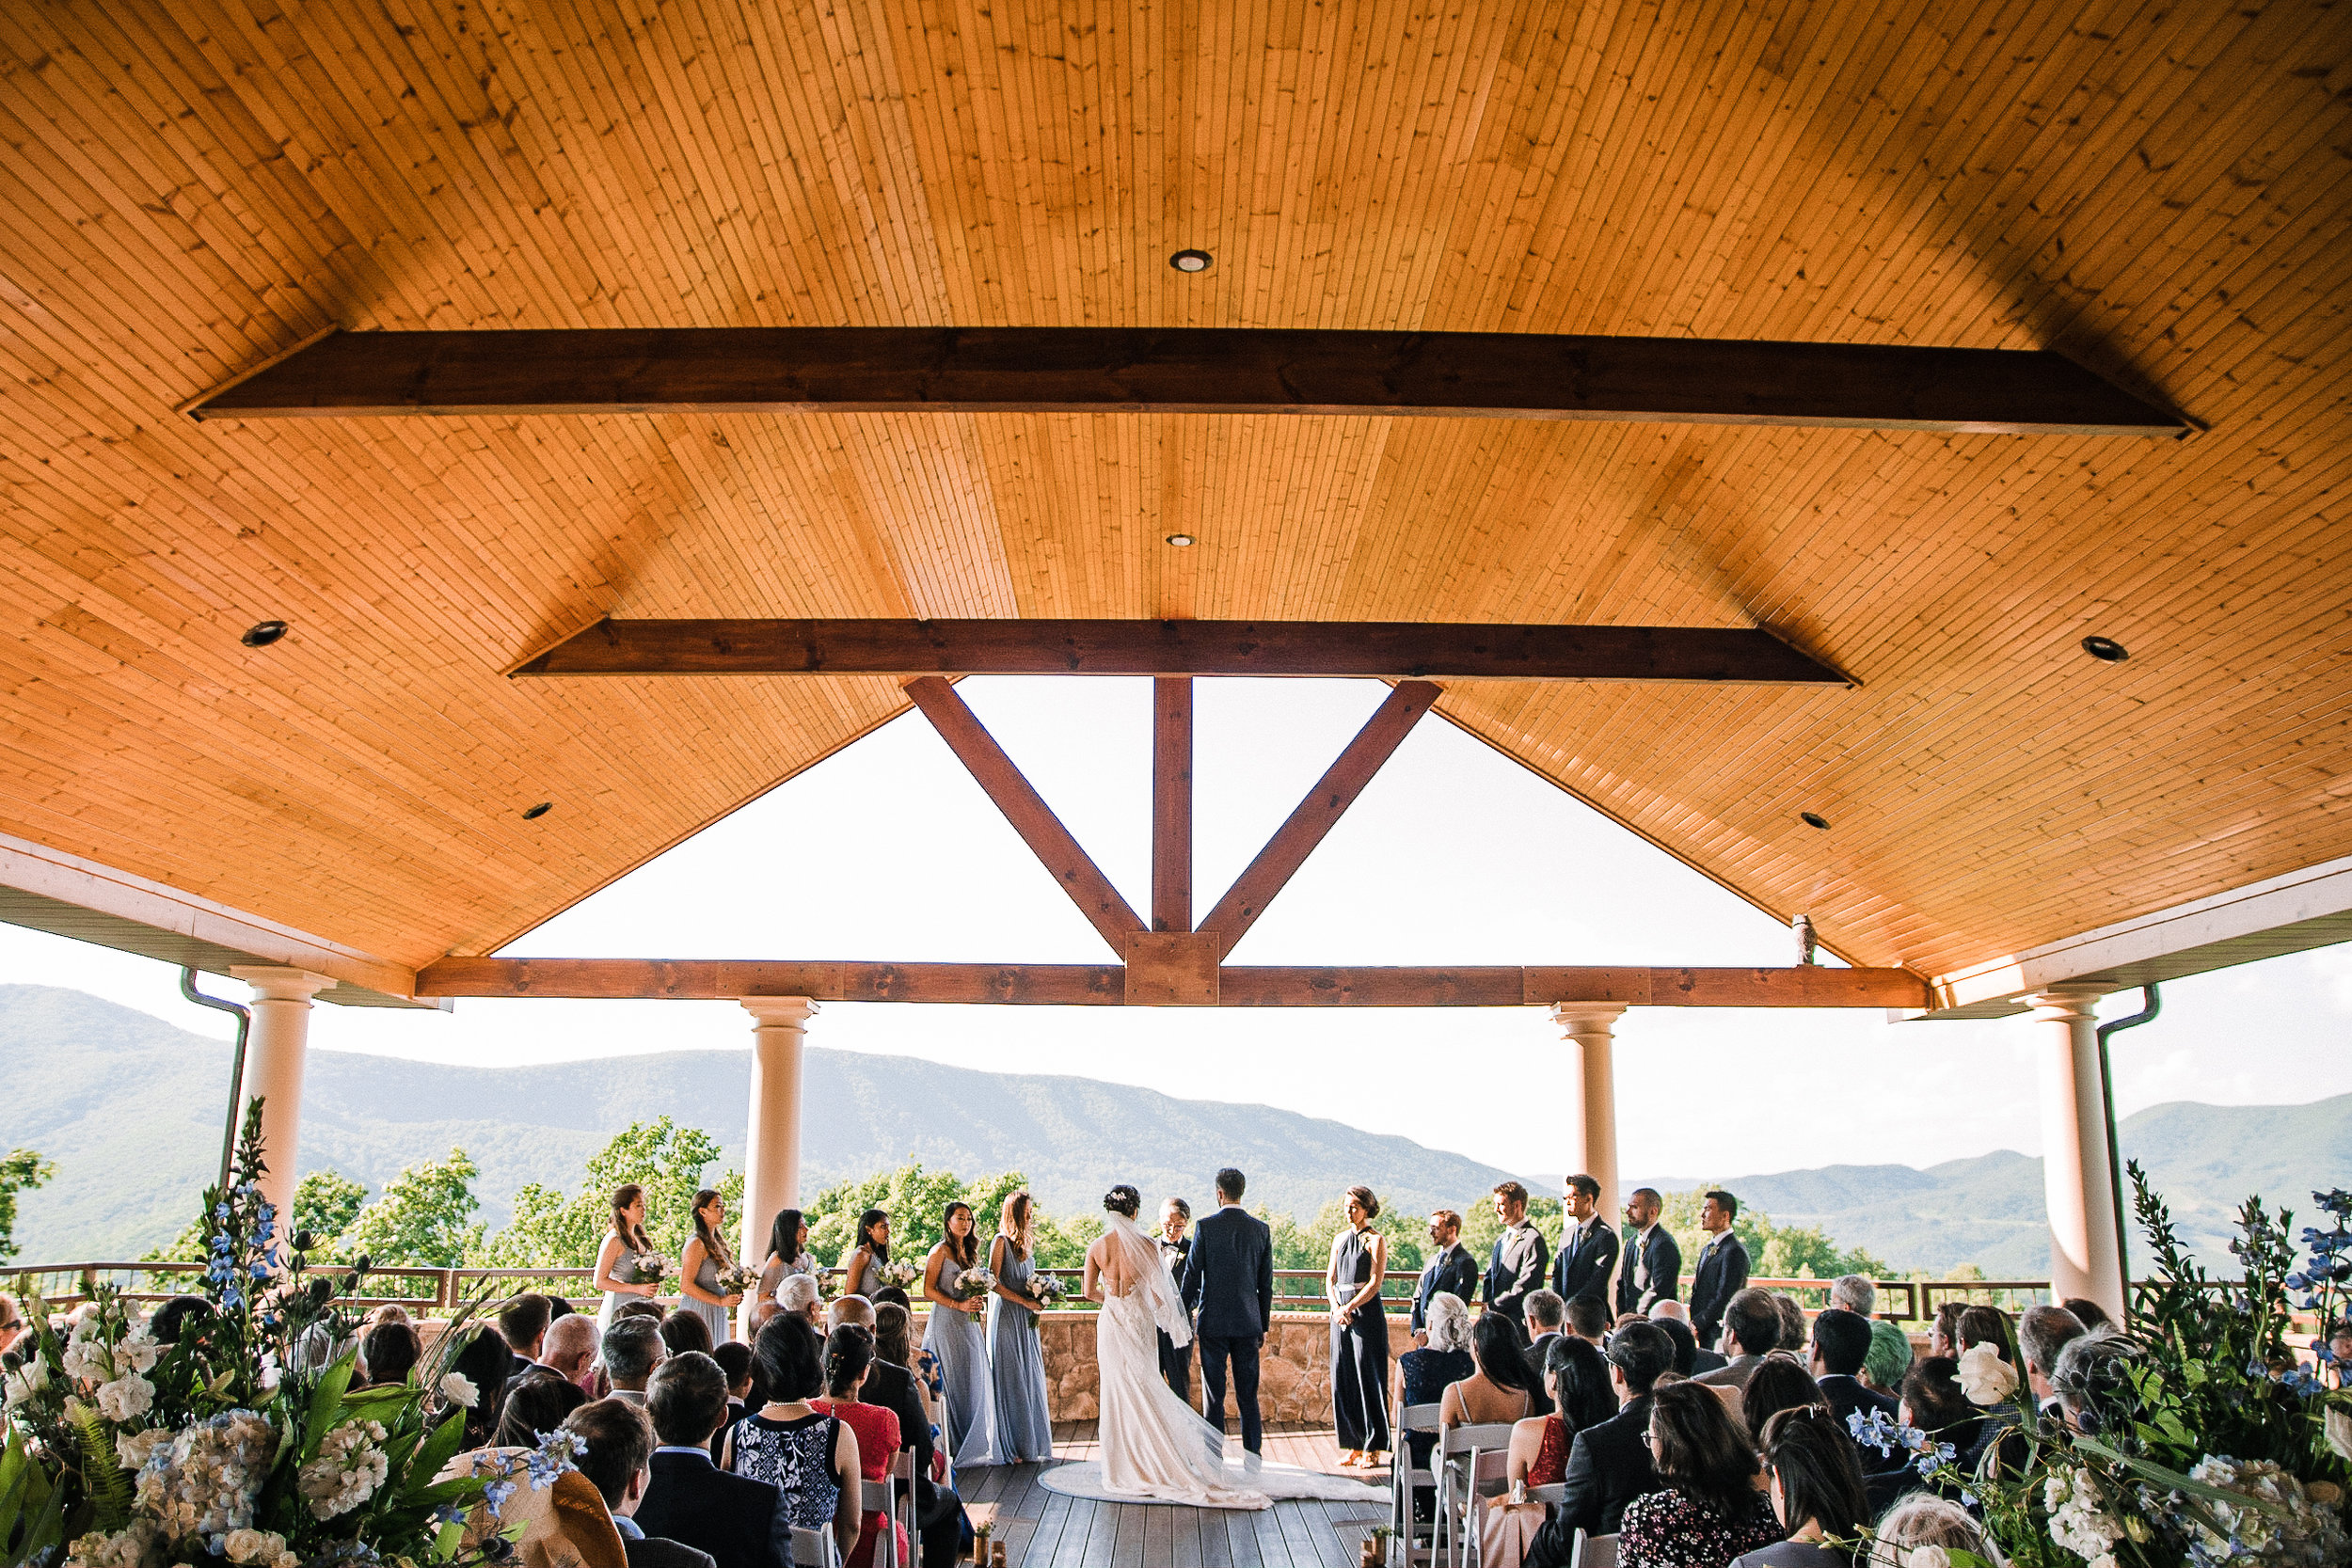 The Best Shenandoah Valley Wedding Venues |  Farms, Vineyards, Barns, Ranches, and Pavilions